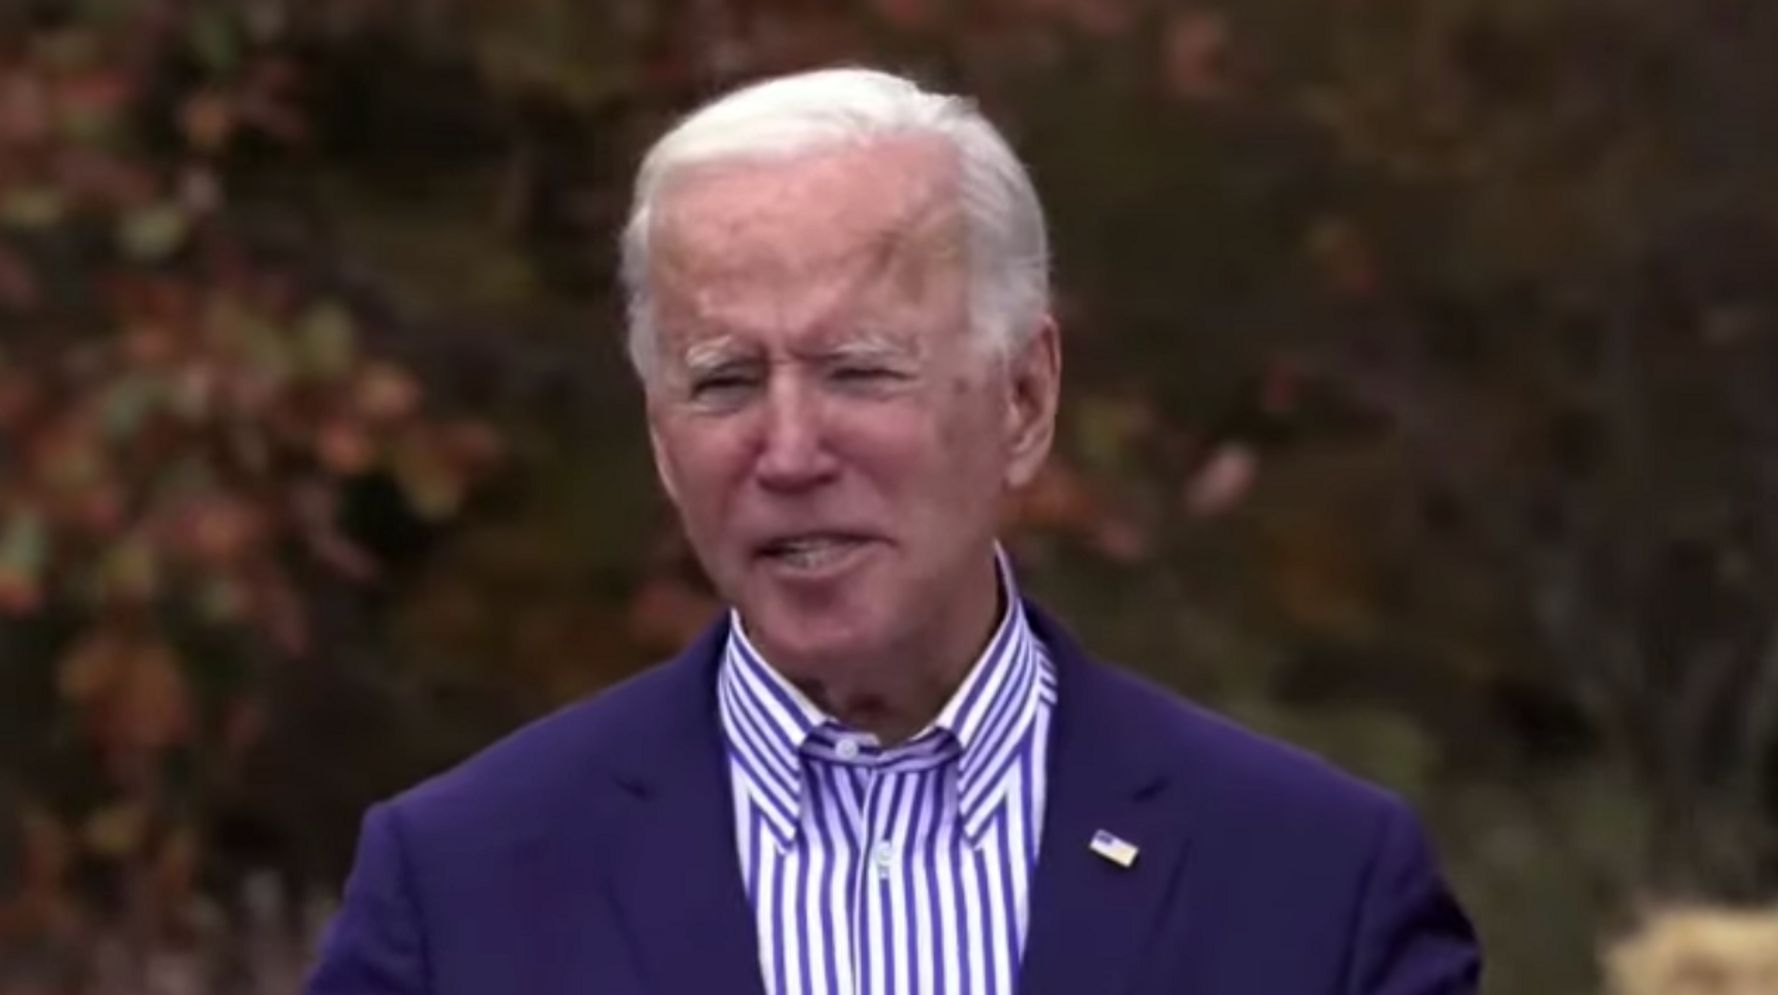 Biden Says He'll Be A President For All, Including Pro-Trump 'Chumps' At Rally